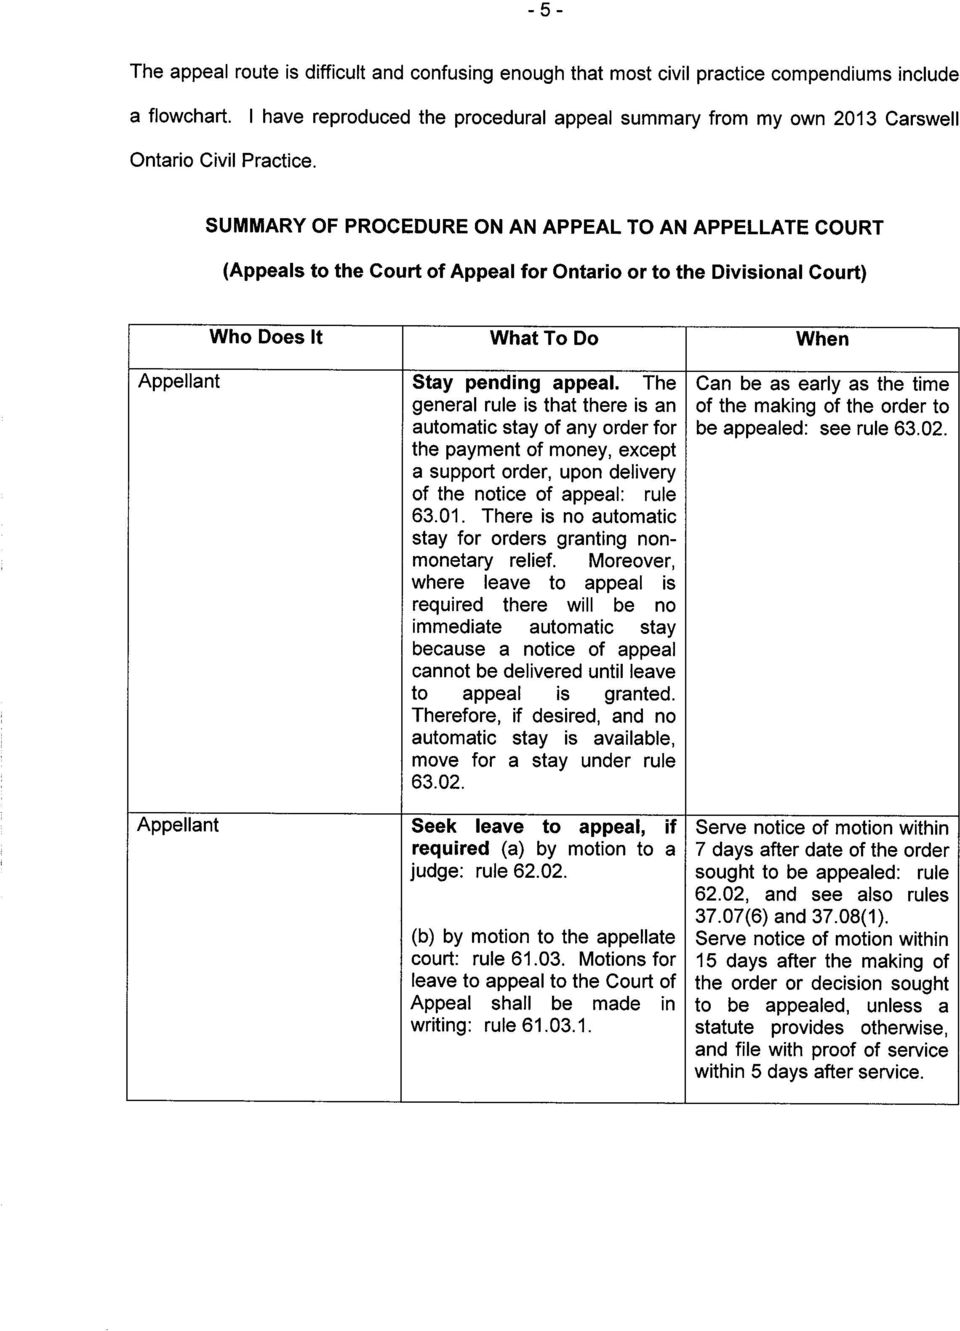 for orders granting non- stay a notice of appeal because be delivered until leave cannot appeal is granted.